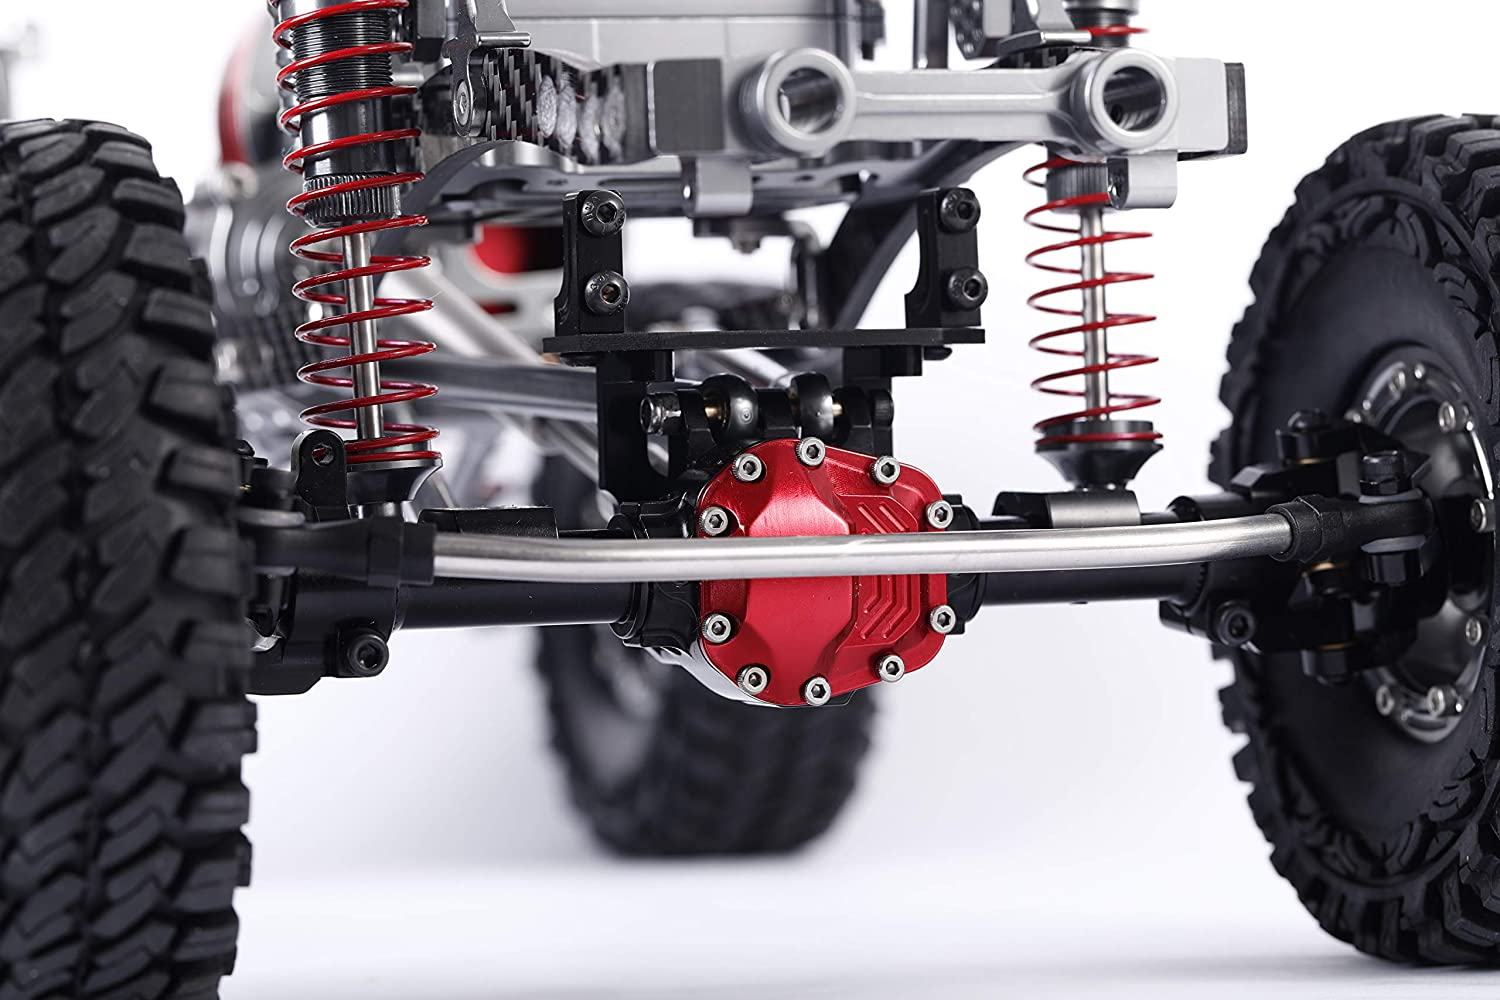 Silver Aluminum Universal Alloy Front Axle and Rear Axle for 1:10 Axial SCX10 RC Model Crawler Car